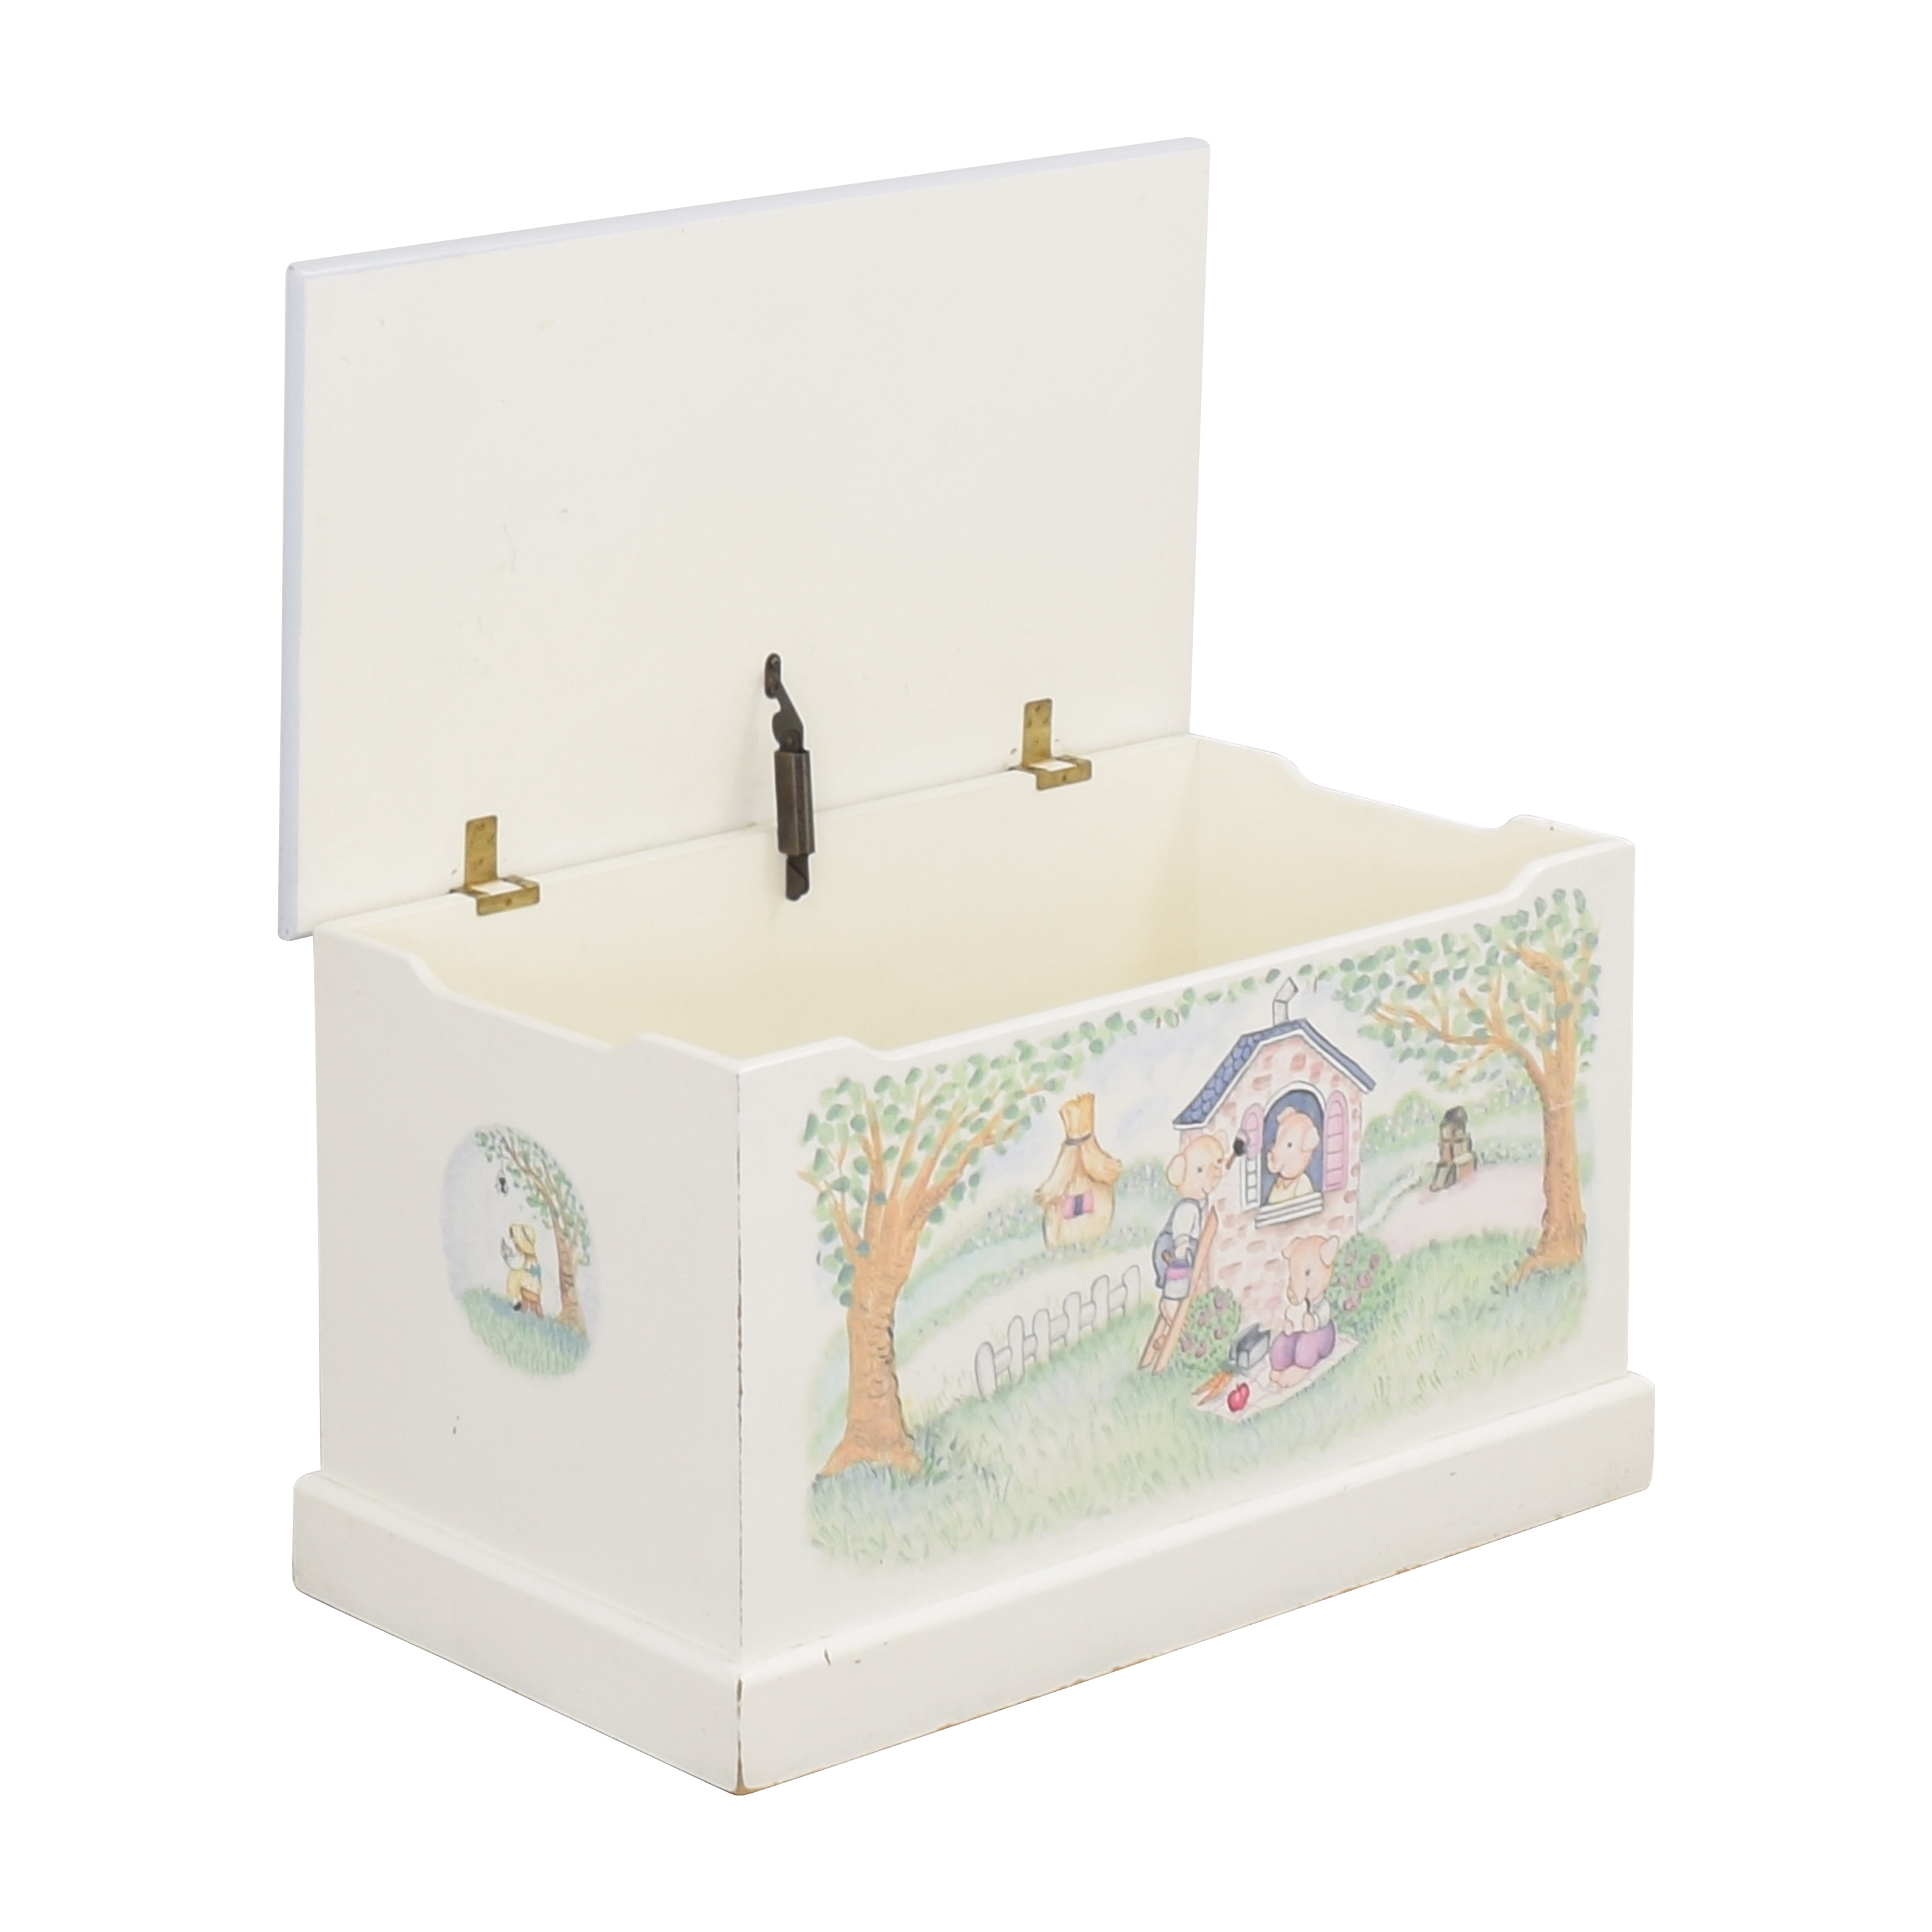 Periwinkles Nursery Rhyme Toy Chest pa